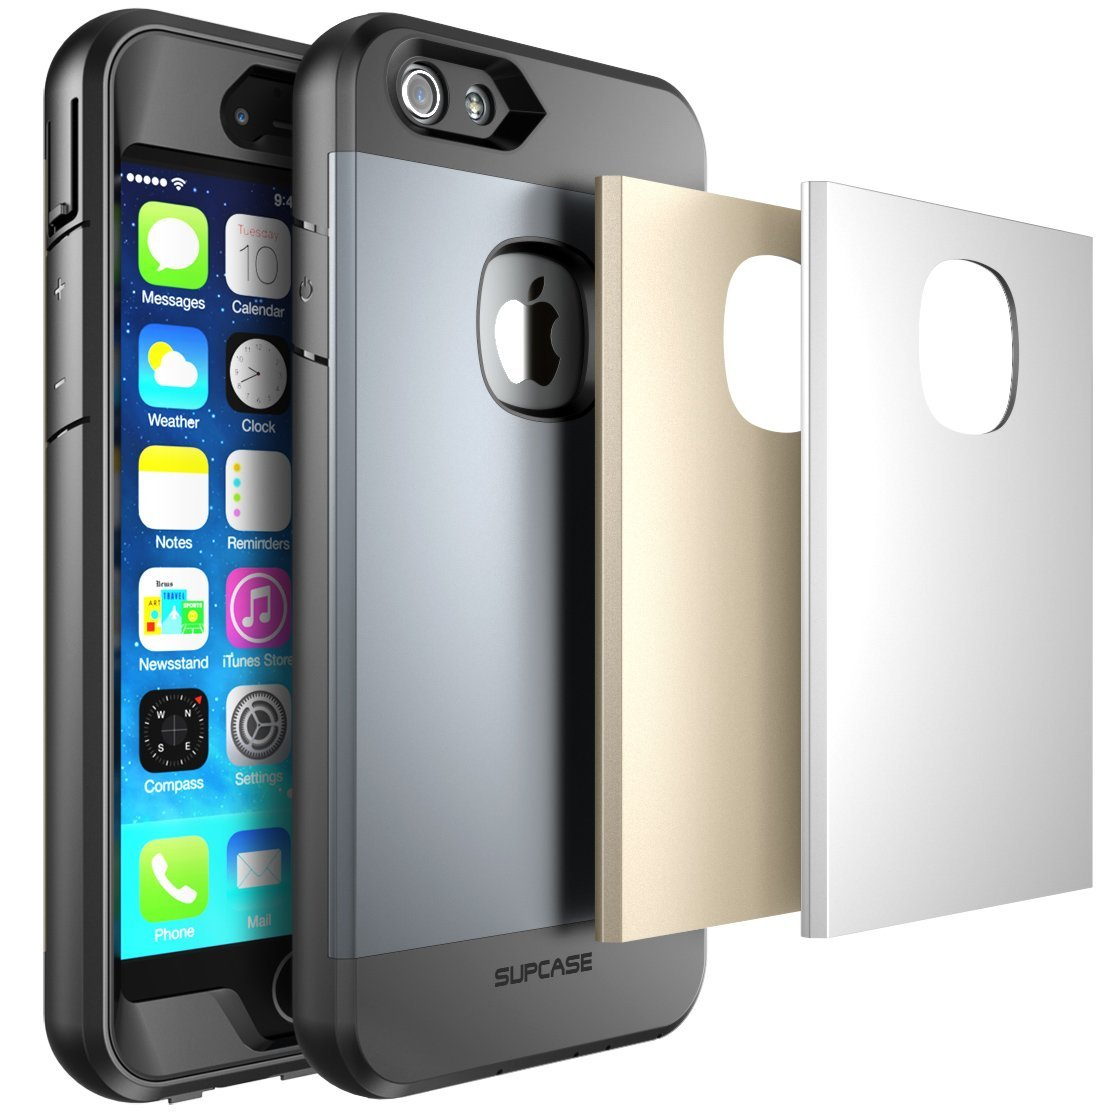 SUPCase Apple iPhone 6 Plus 5.5 inch Case - Ultra-thin Water Resistant, Dust and Impact Proof Protective Cover - Multiple Colors